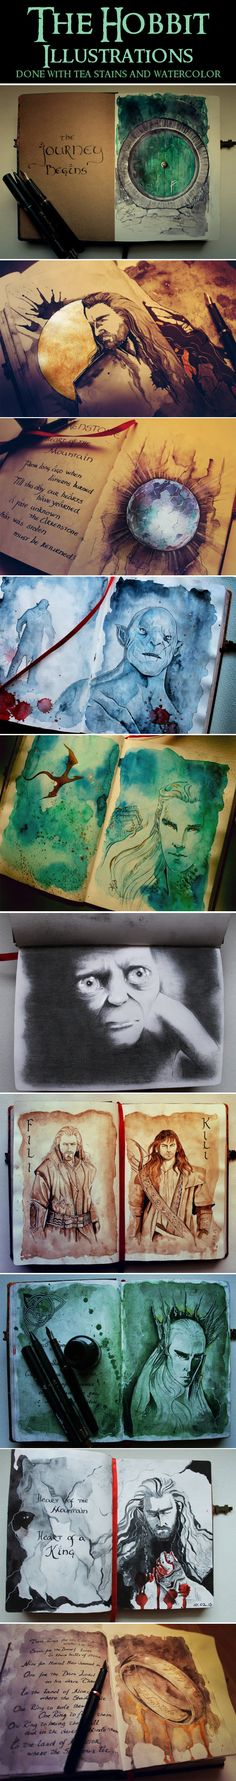 The Hobbit Illustrations…  If anyone knows who drew this, PLEASE let me know - I want to link back to them because this is AWESOME! It's so good, it's hurts to look at them.